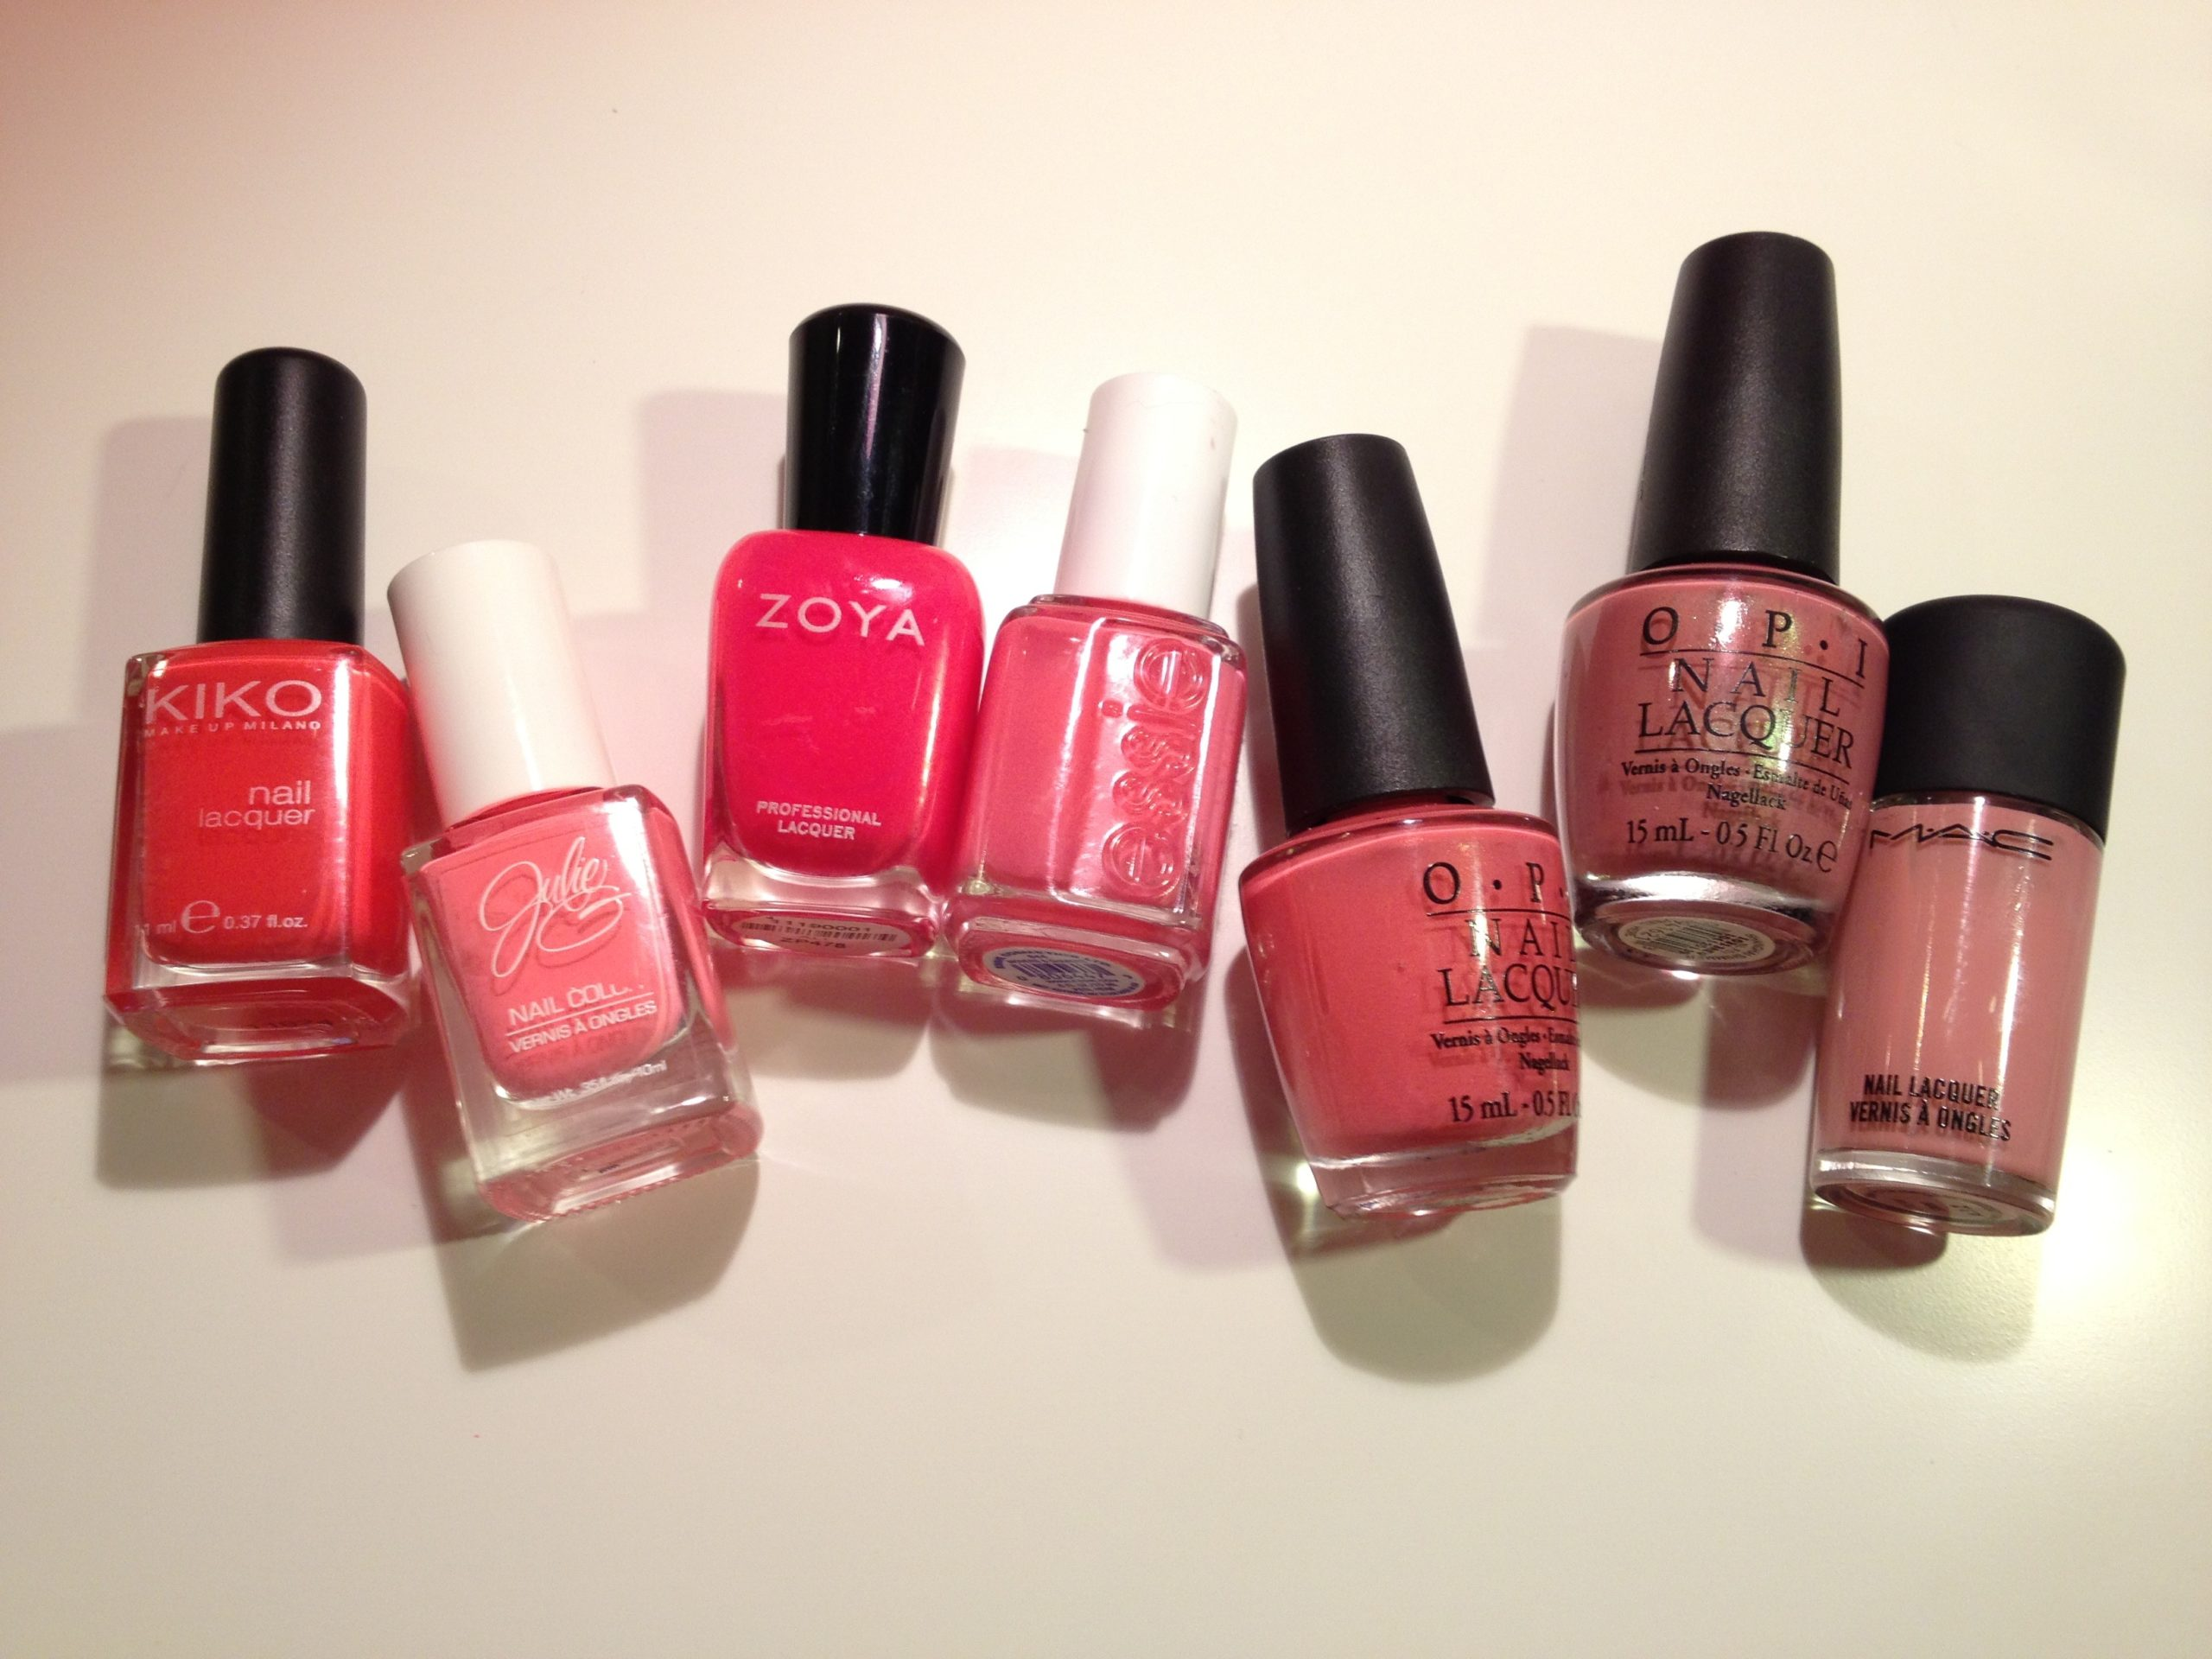 Spring Nail Polish Picks - Pinks and Corals